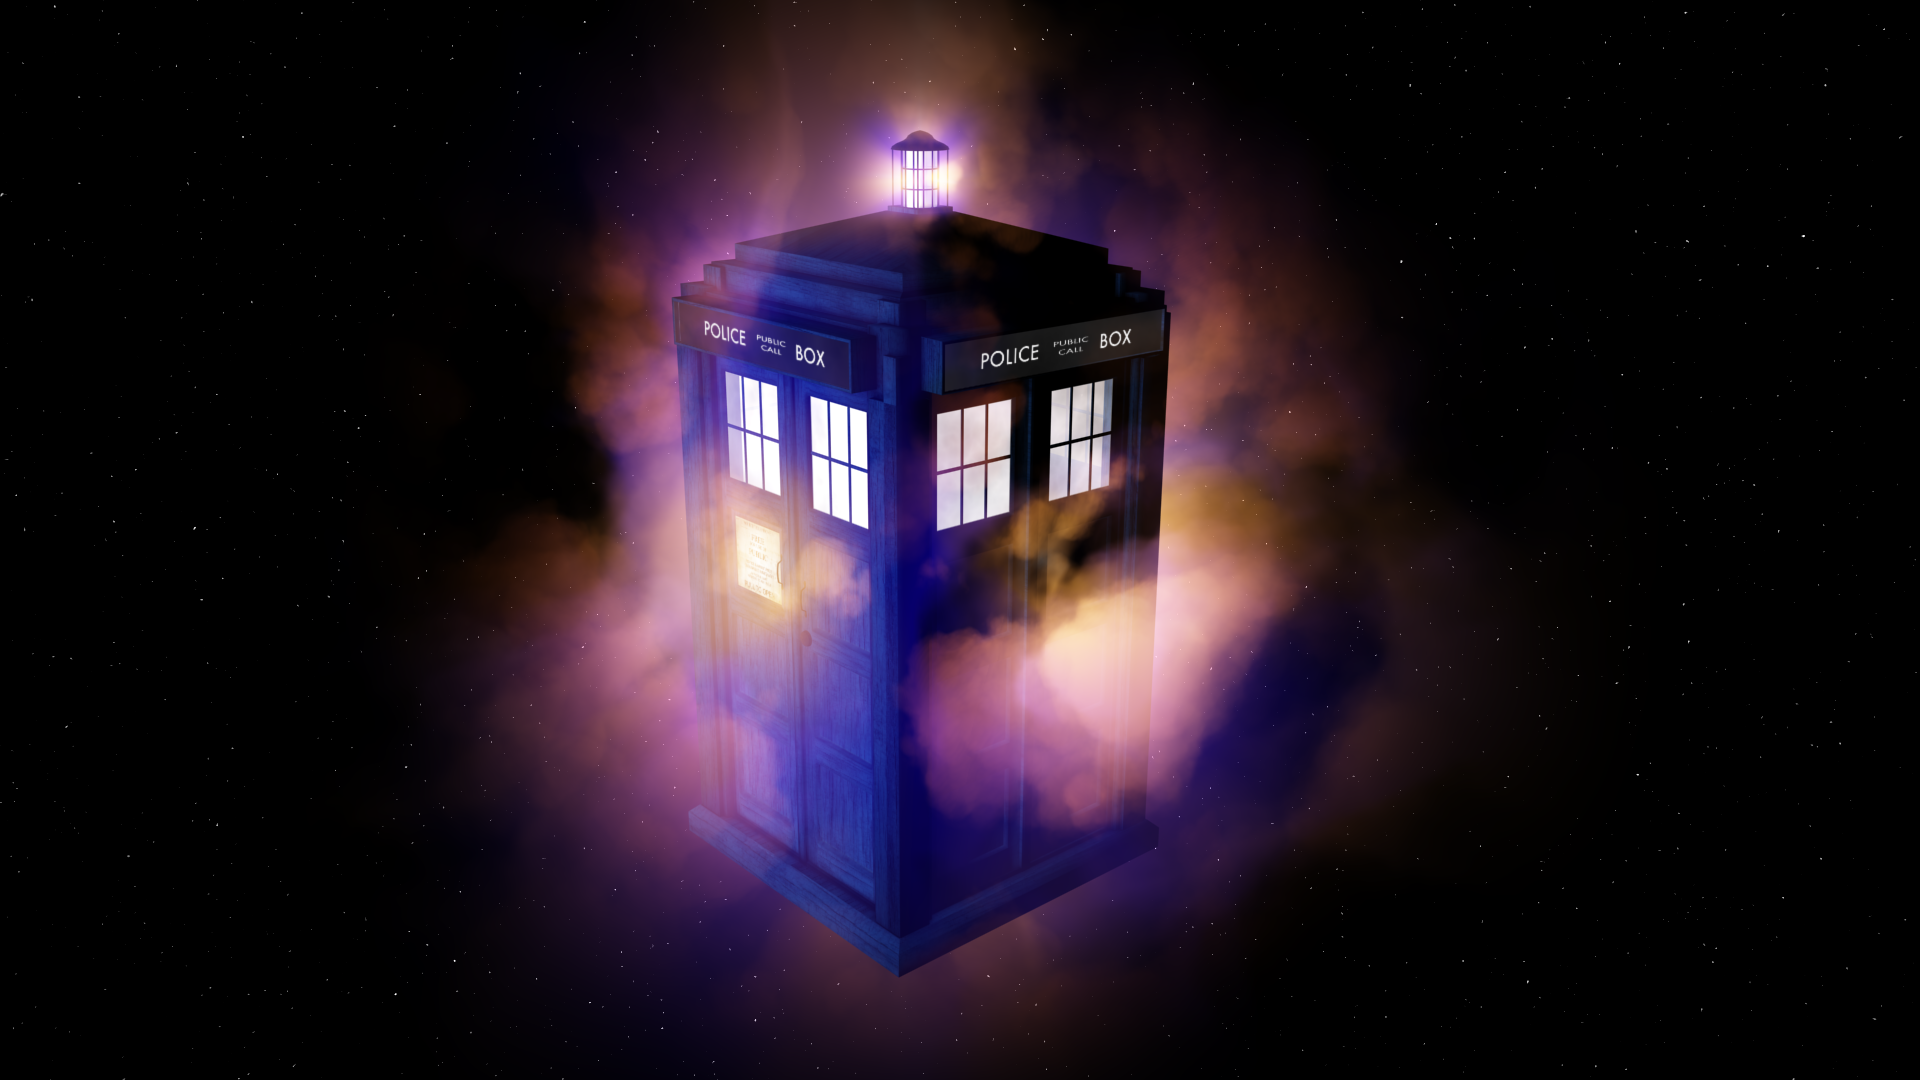 Animated tardis wallpaper wallpapersafari for Deviantart wallpaper